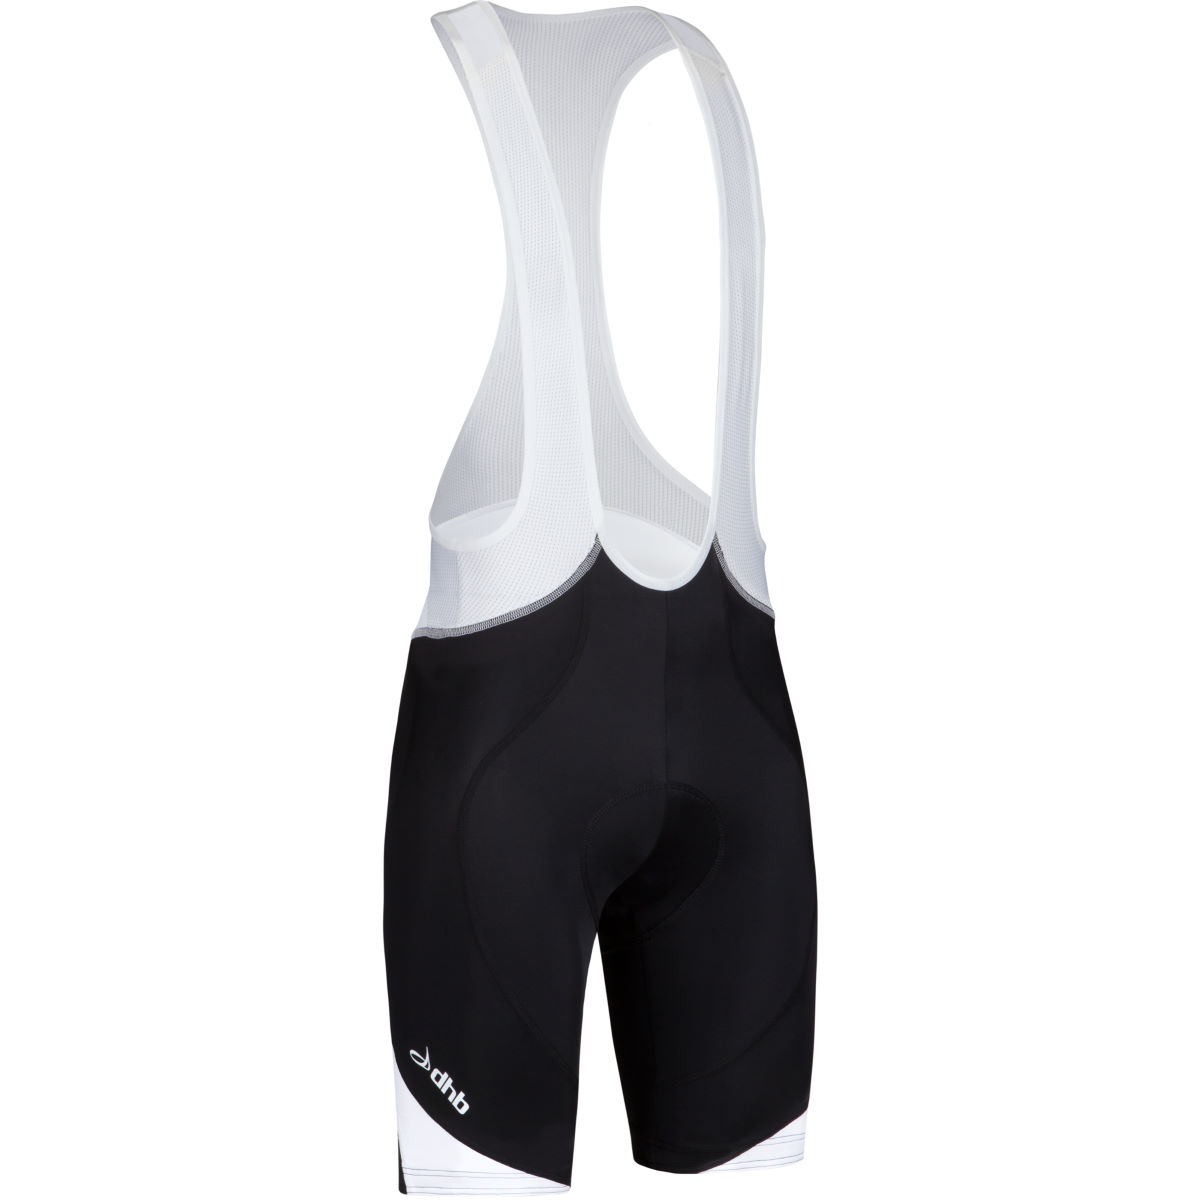 Dhb Aeron Race Cycling Bib